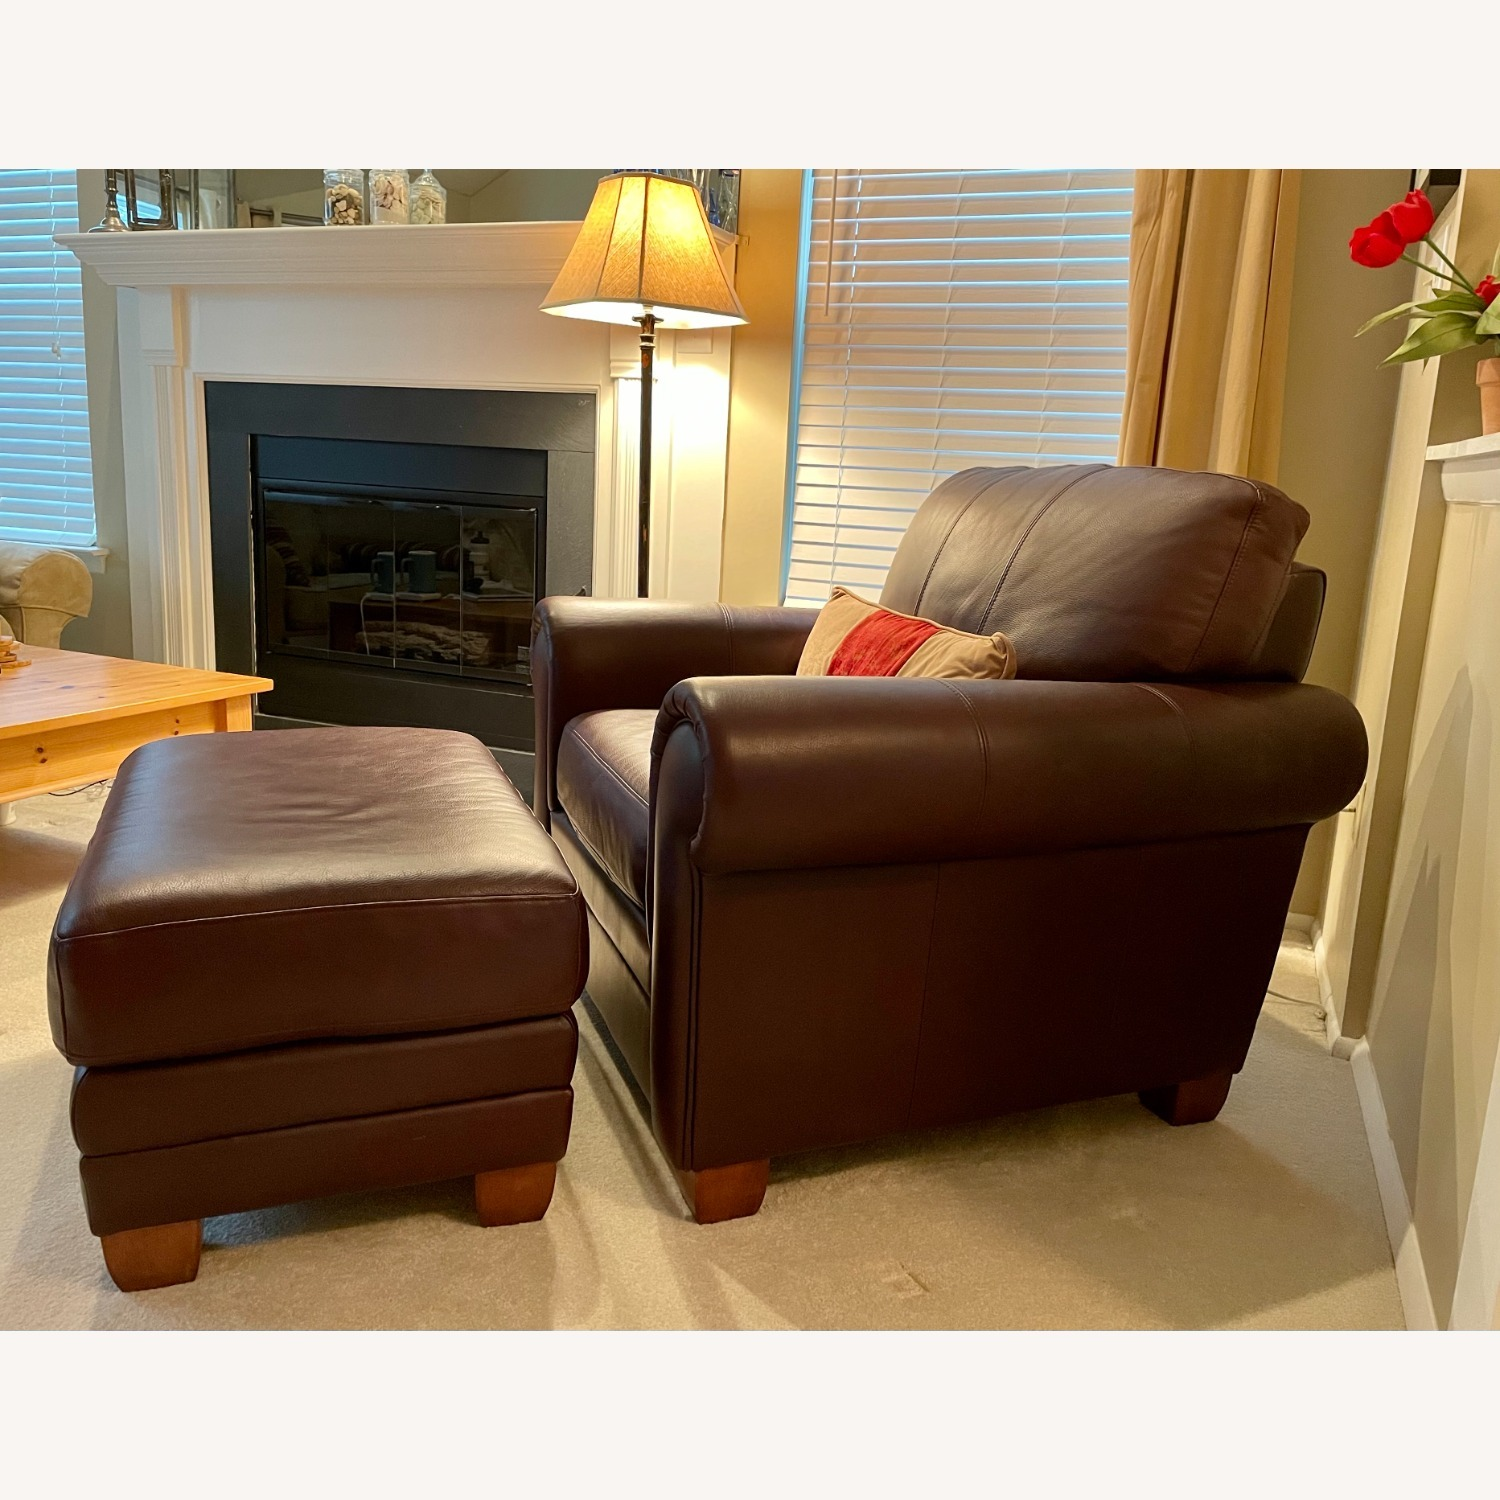 Ethan Allen Leather Chair & Ottoman - image-3